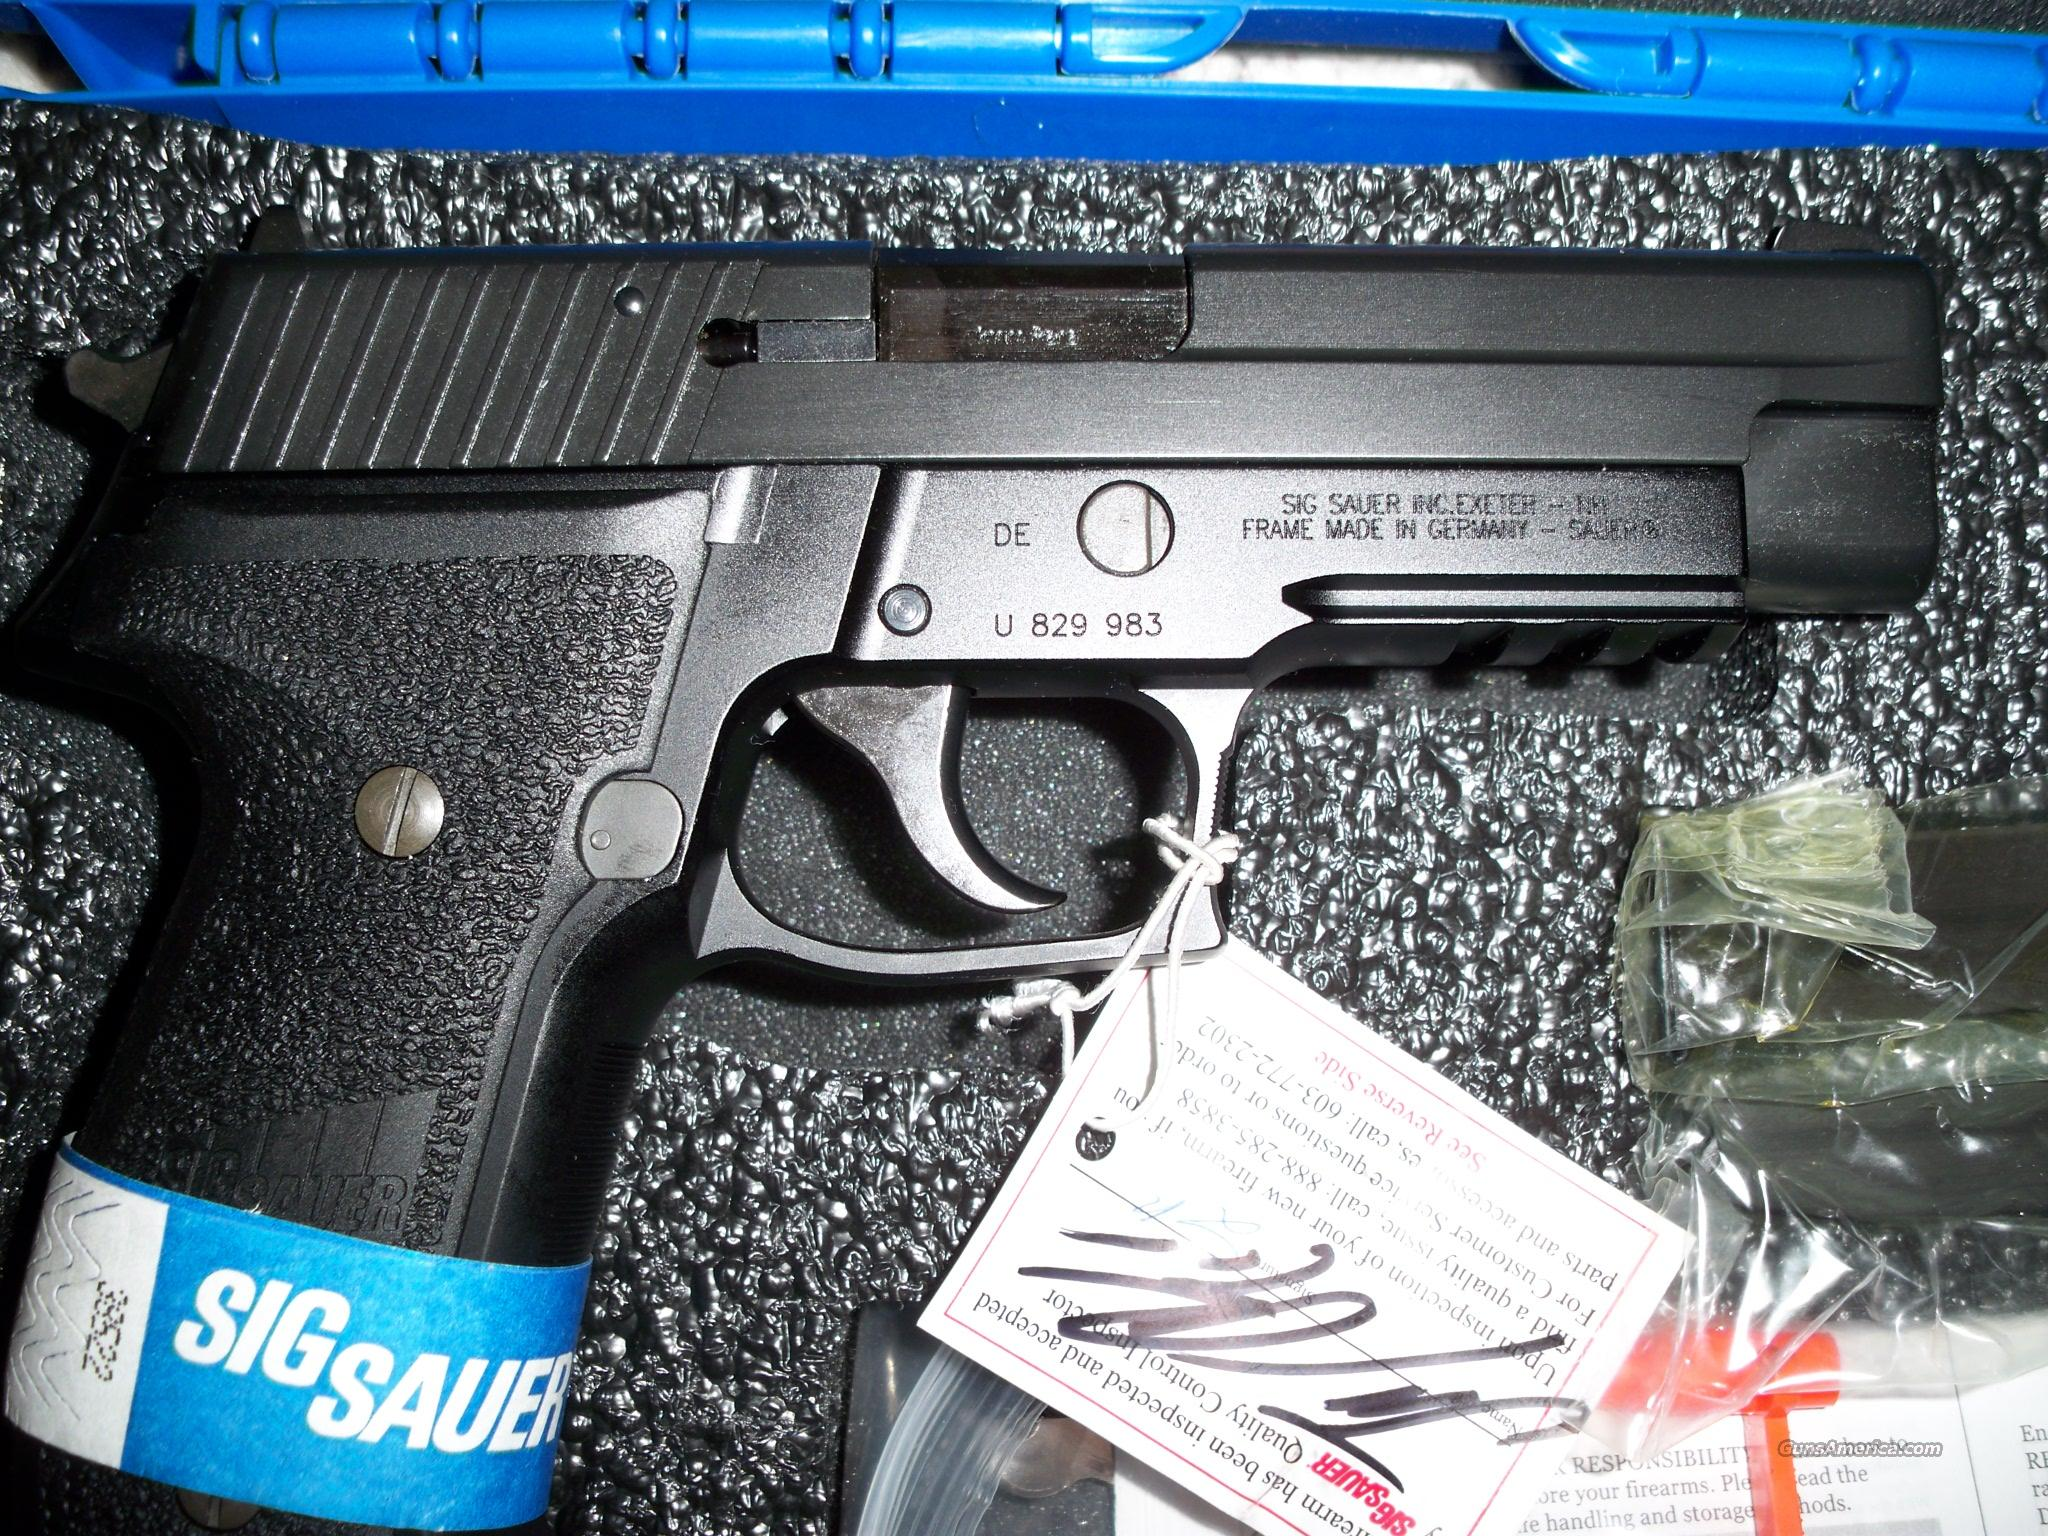 SIG P226 NAVY 9MM BLUE RAIL 3 15RD MAGS  Guns > Pistols > Sig - Sauer/Sigarms Pistols > P226